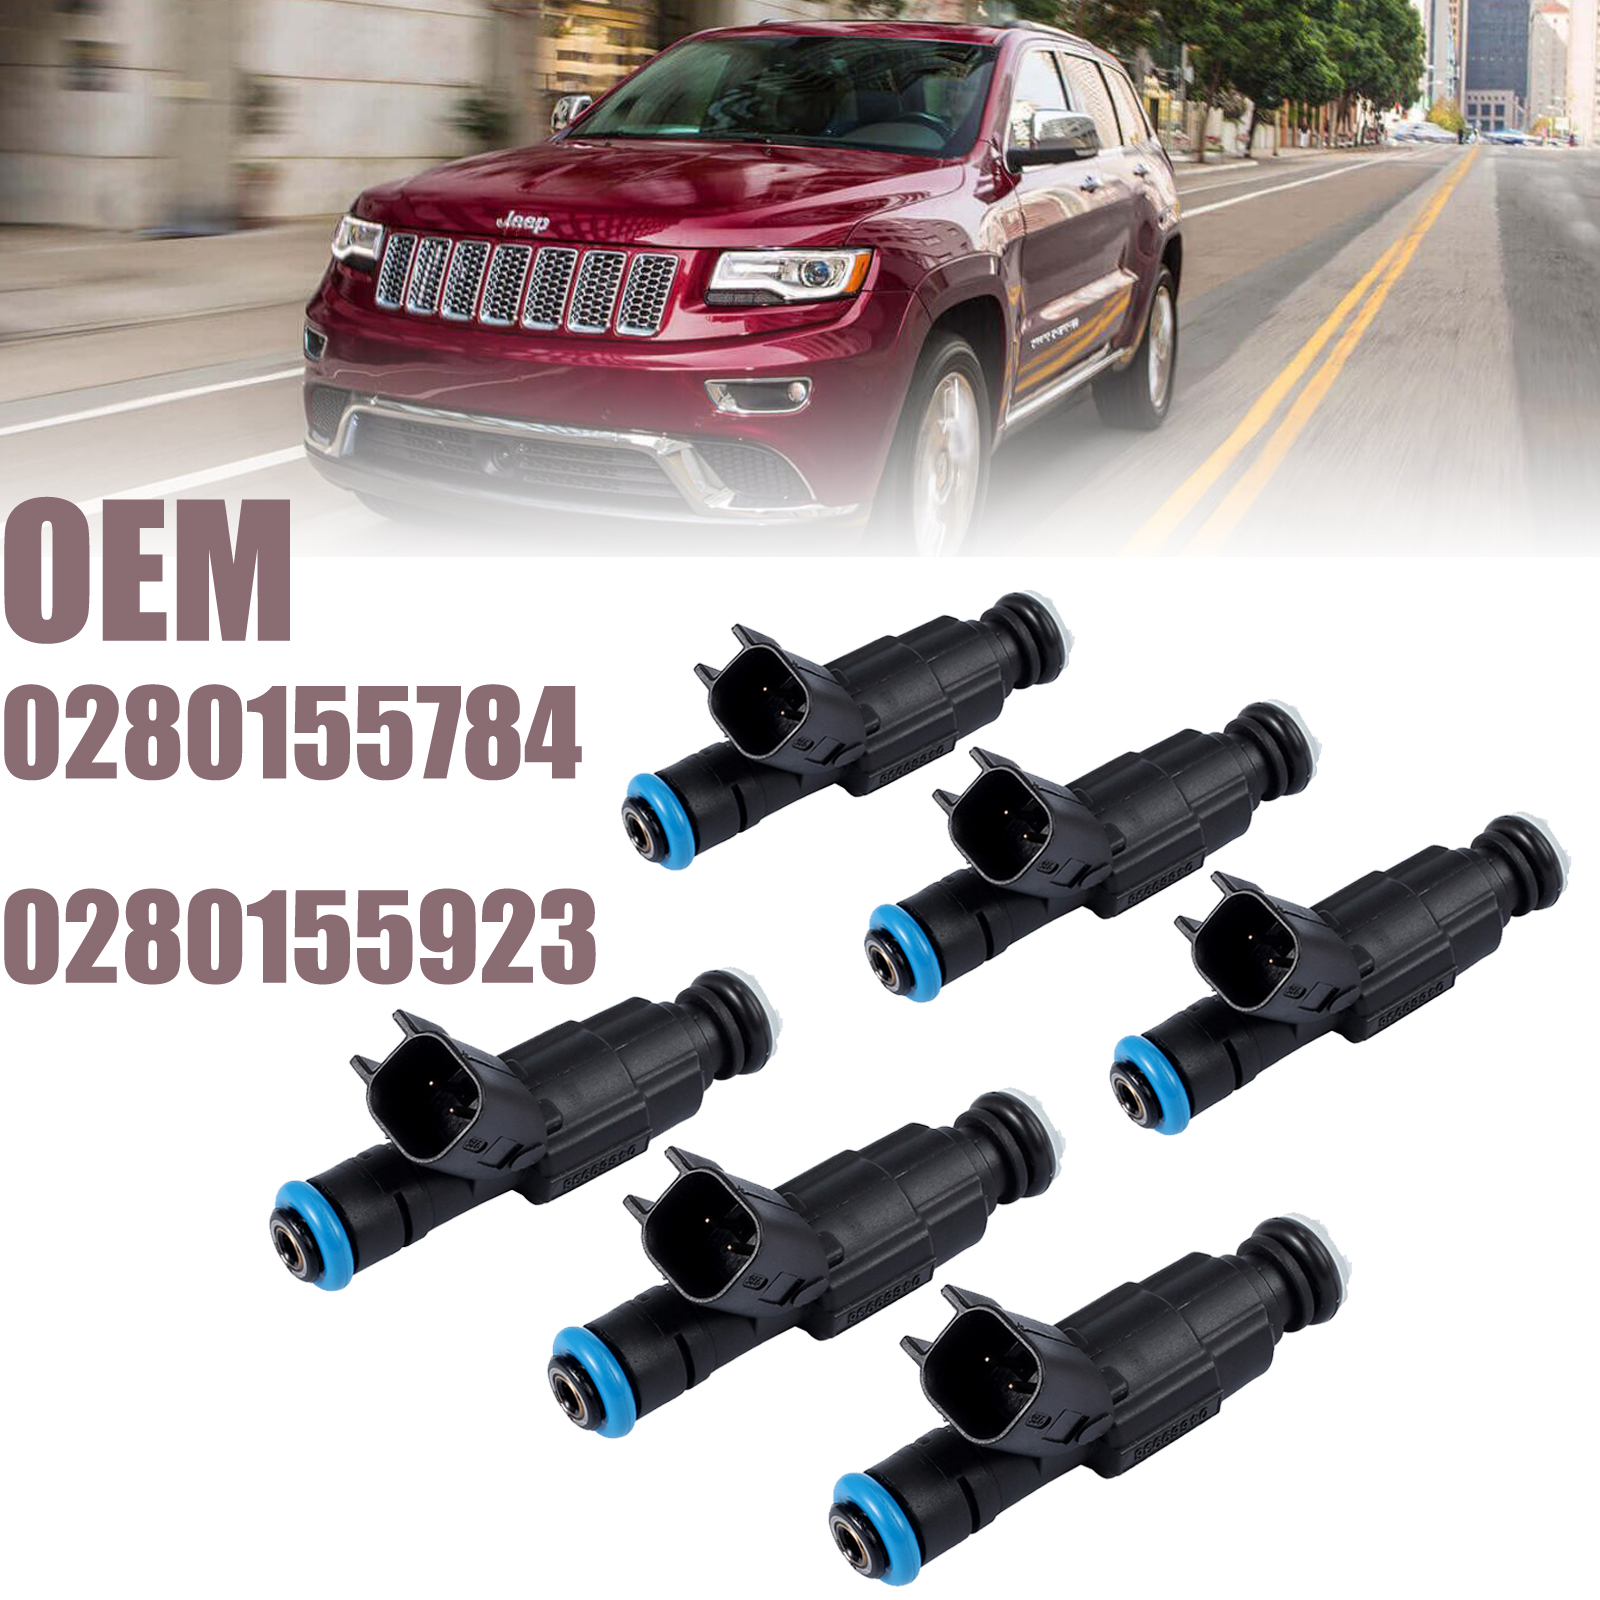 6 PCS 4-Hole Upgrade Fuel Injectors For 99-04 4.0L Jeep Cherokee 0280155784 NEW